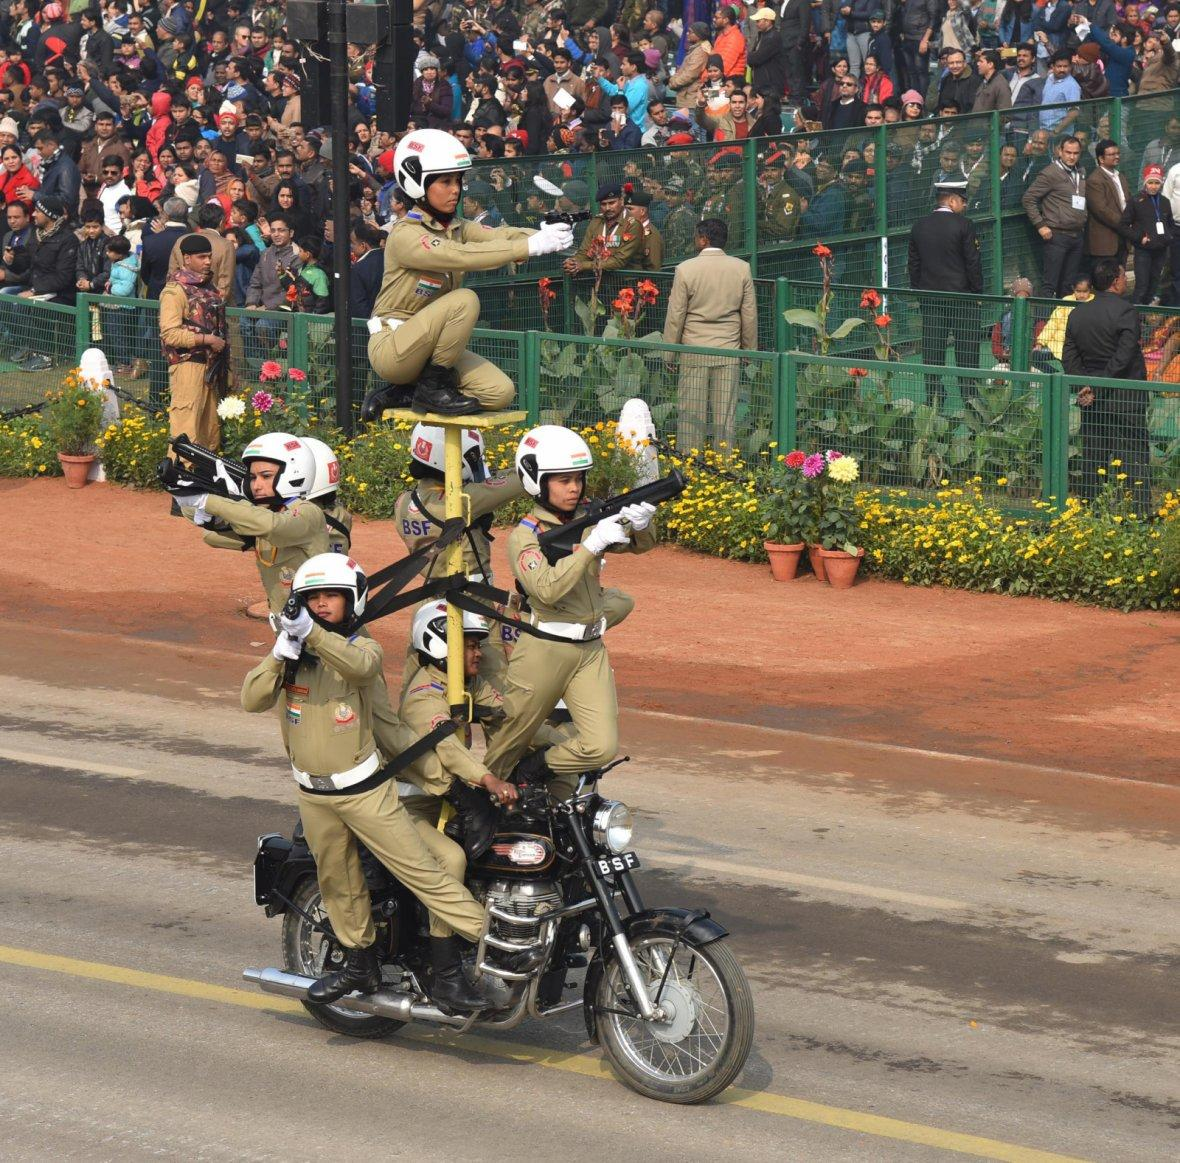 Rajpath comes alive with the dare devil stunts of Women's Motor Cycle team 'Seema Bhawani' of Border Security Force, on the occasion of the 69th Republic Day Parade 2018, in New Delhi on January 26, 2018.